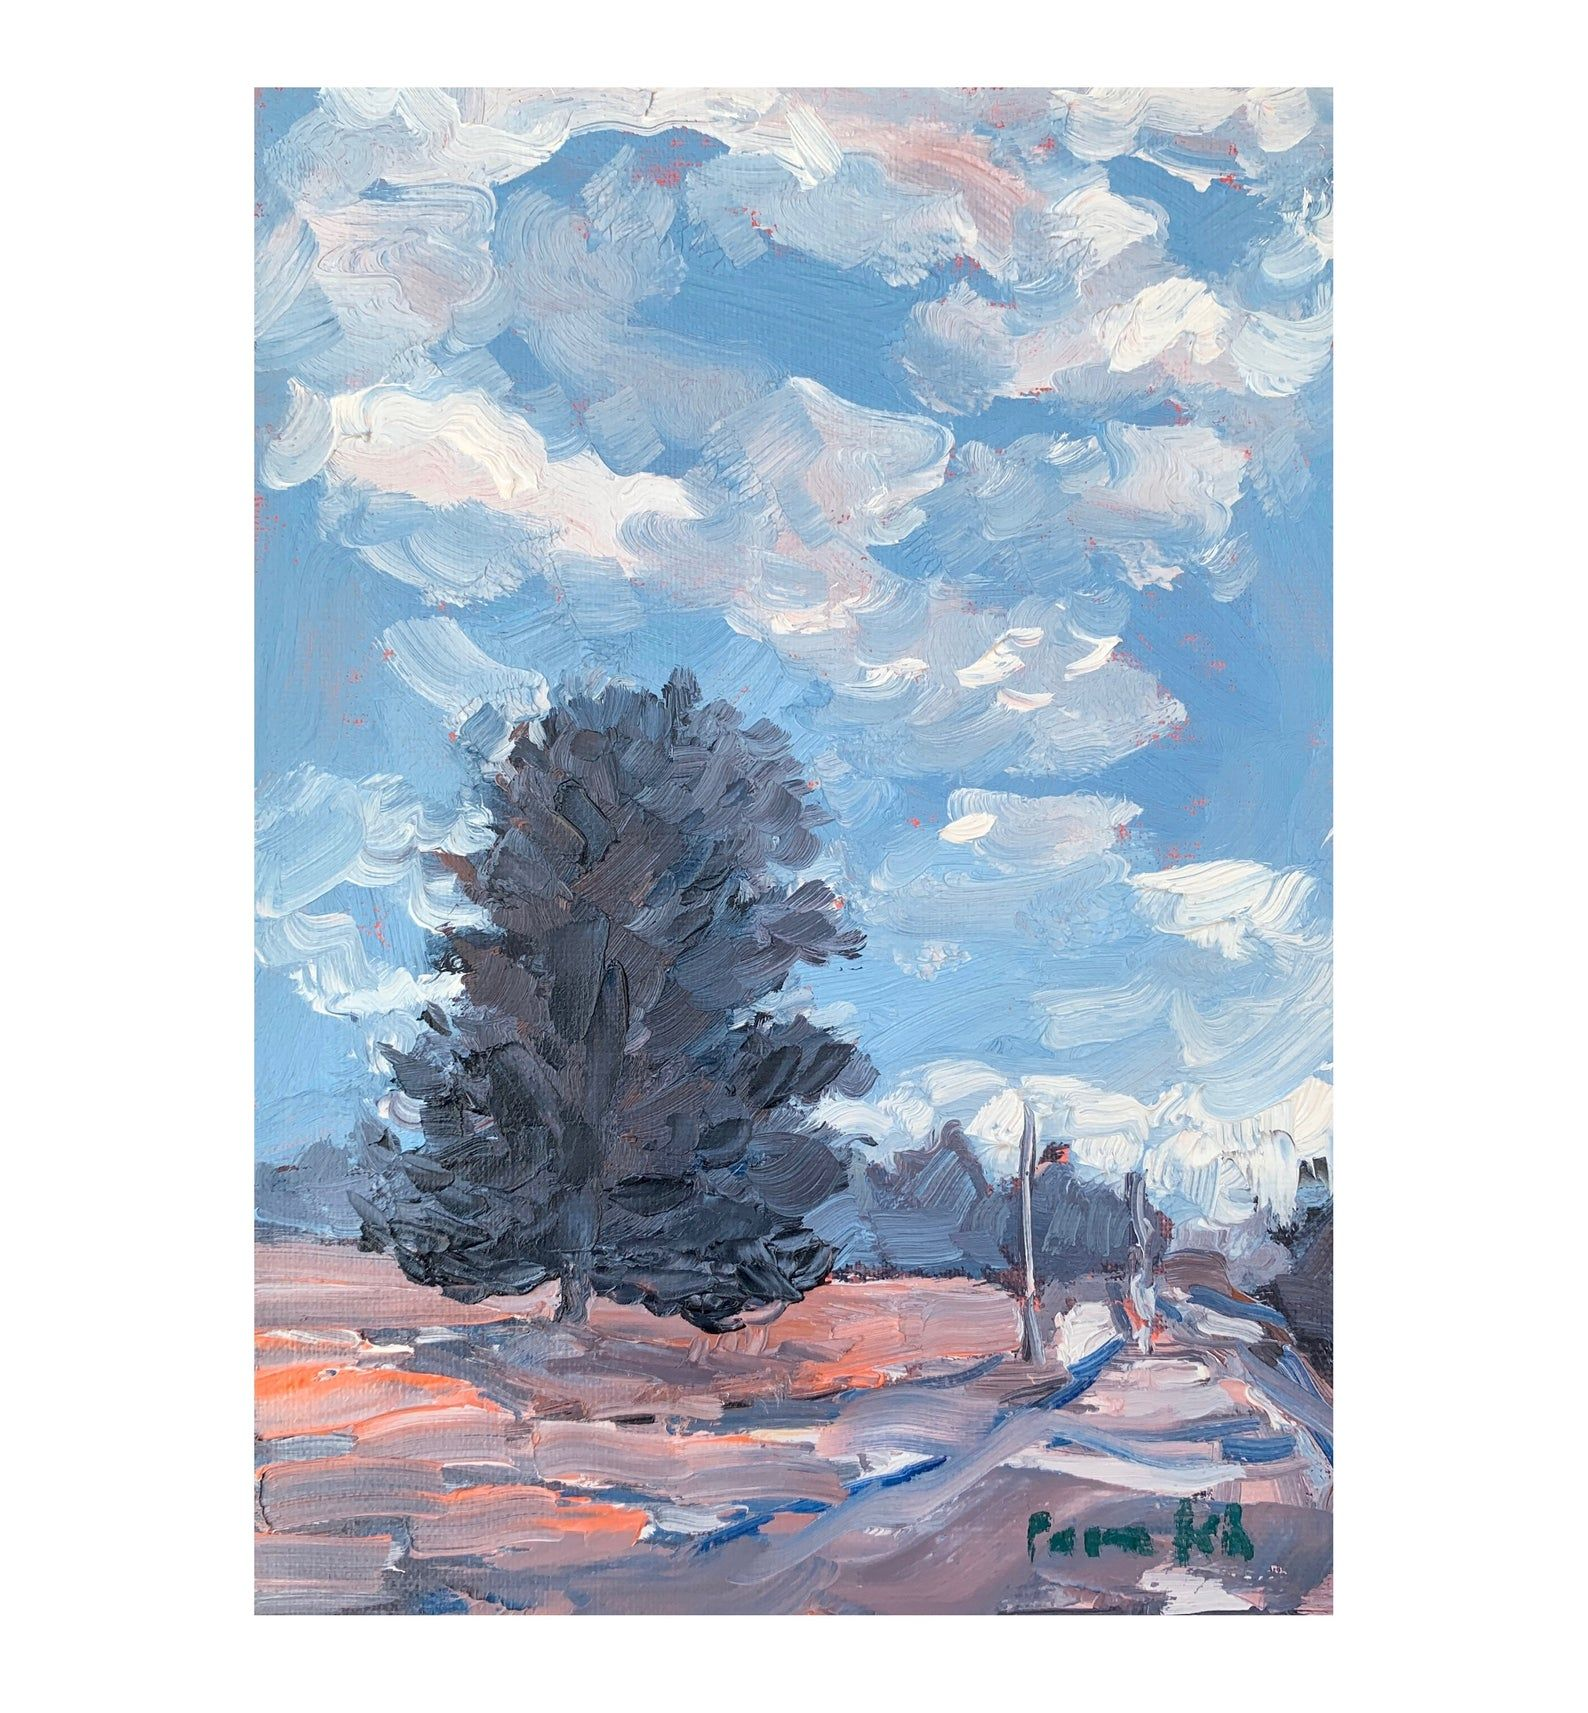 Mini Landscape Oil Painting Original Painting The Lone Pine Etsy In 2020 Oil Painting Landscape Plein Air Paintings Original Paintings